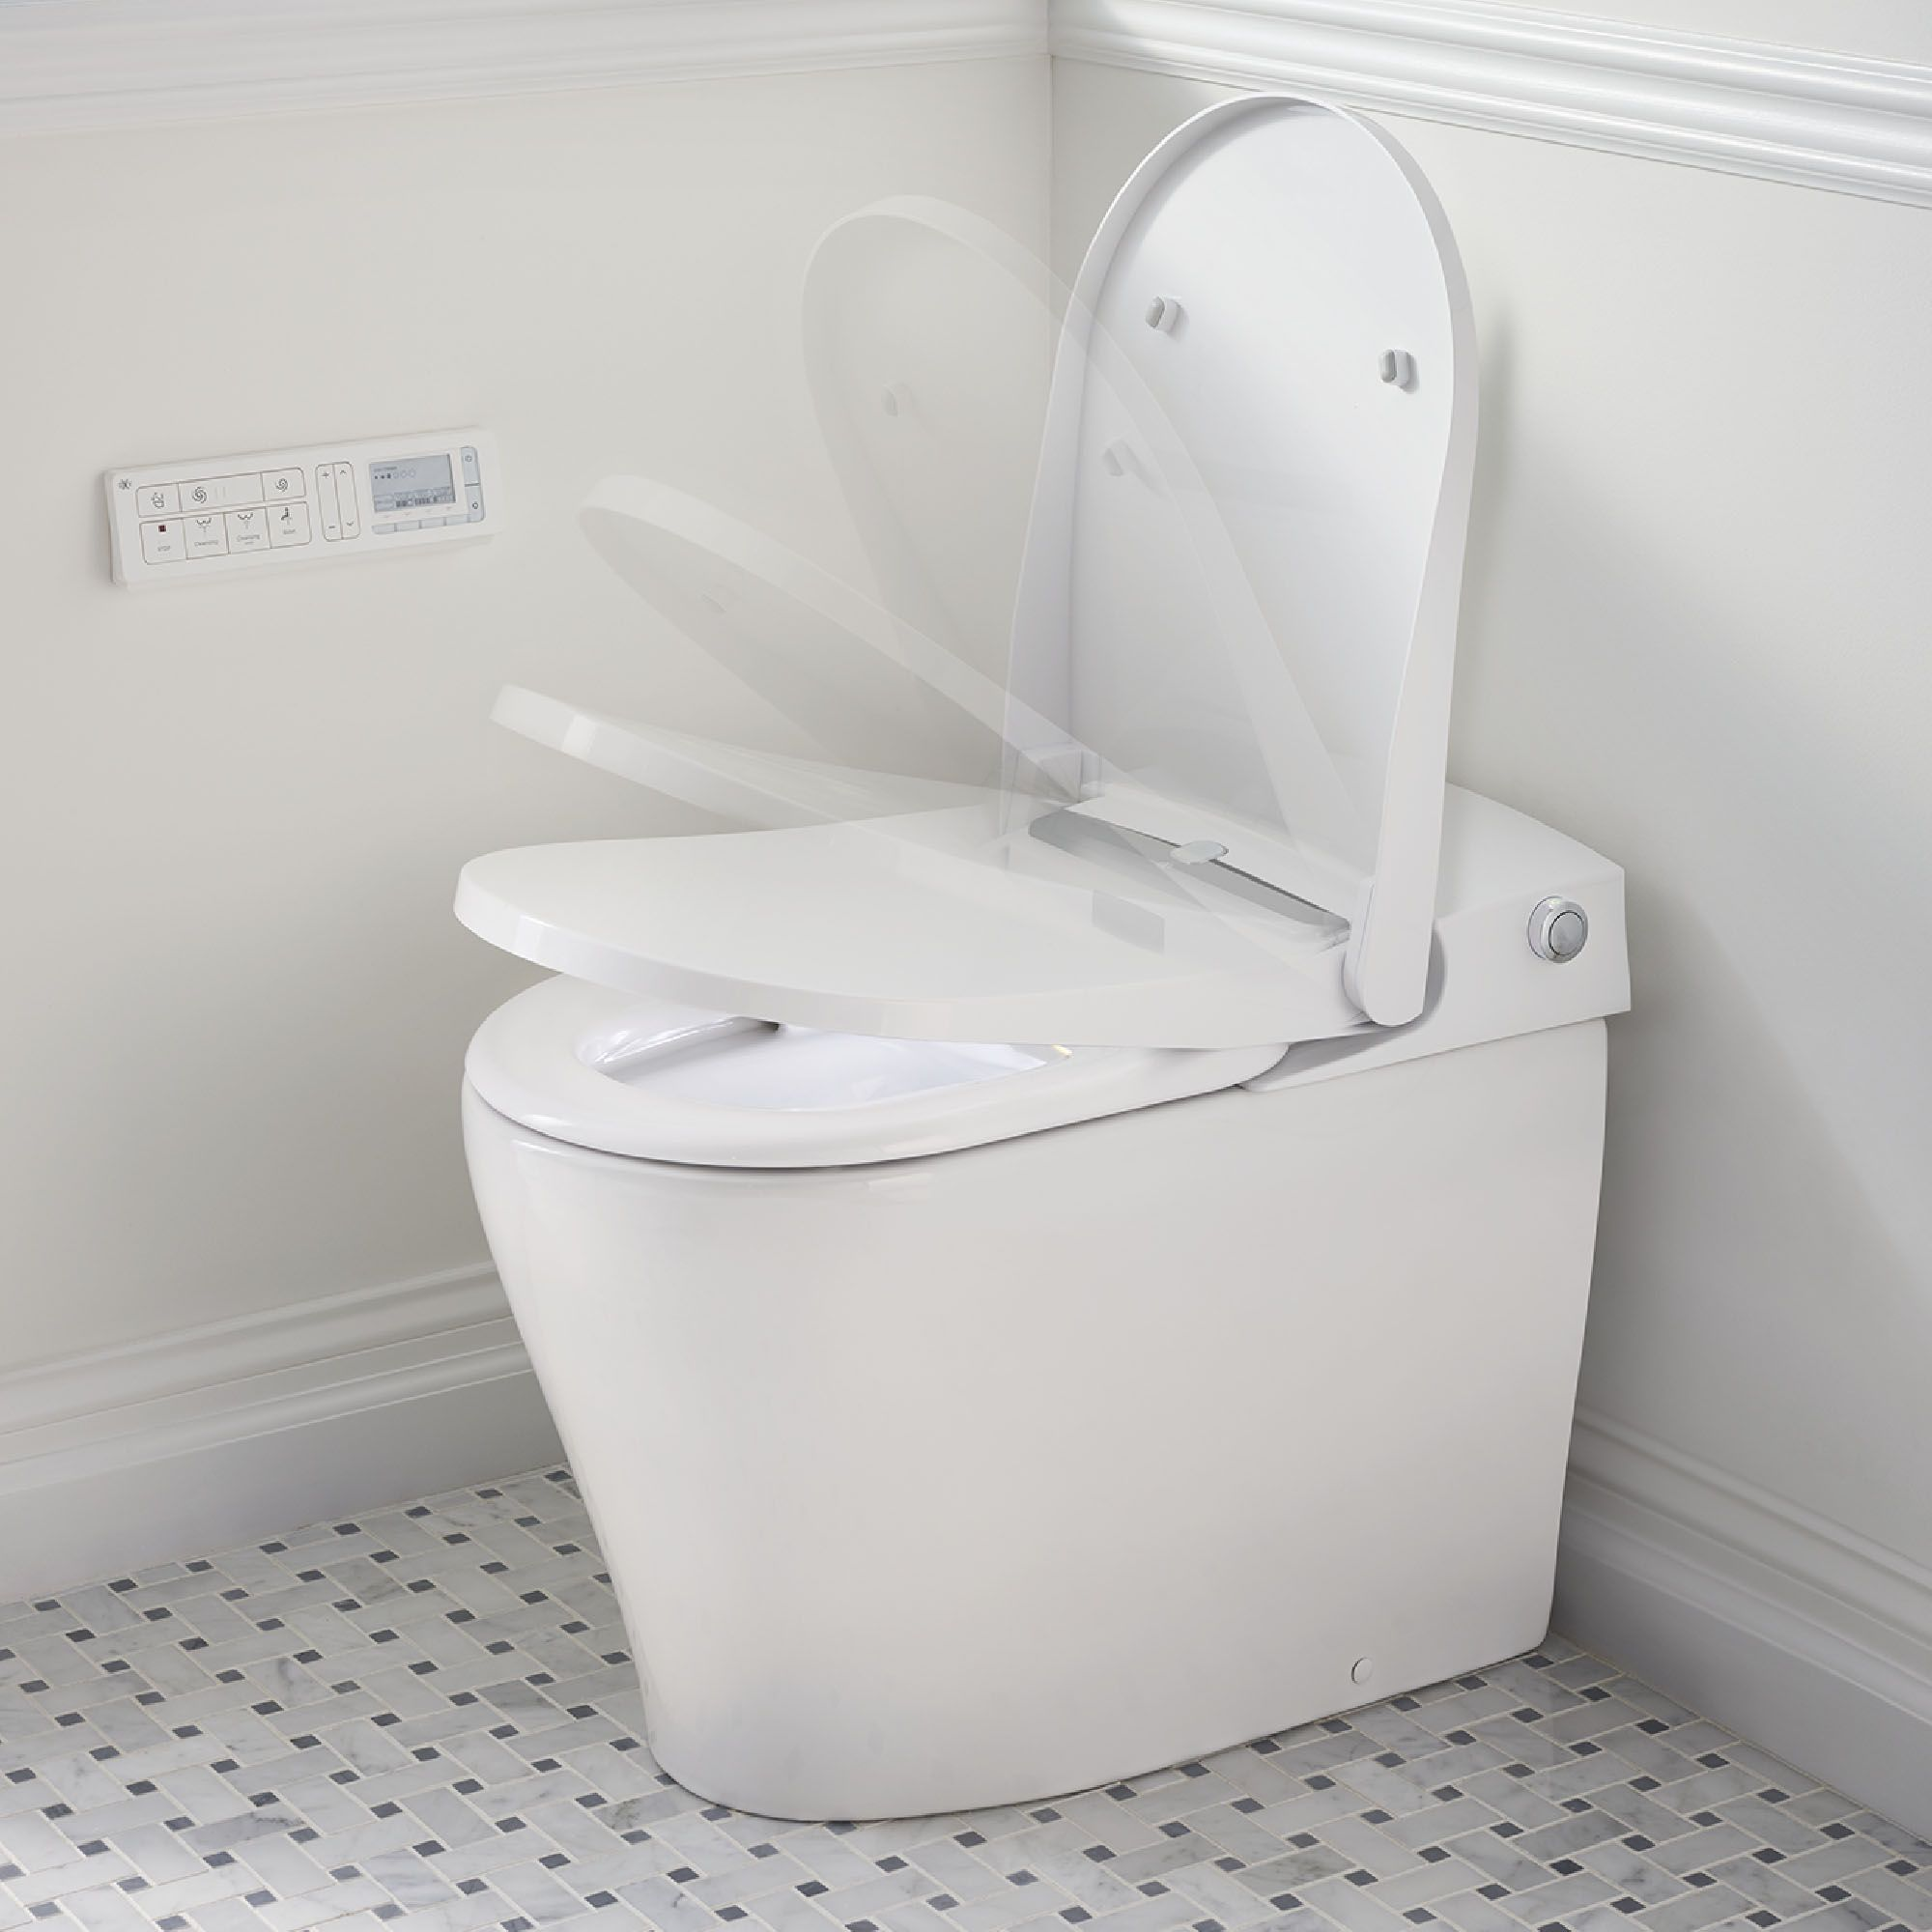 At200 Ls Spalet Bidet Toilet With Automatic Seat With Images